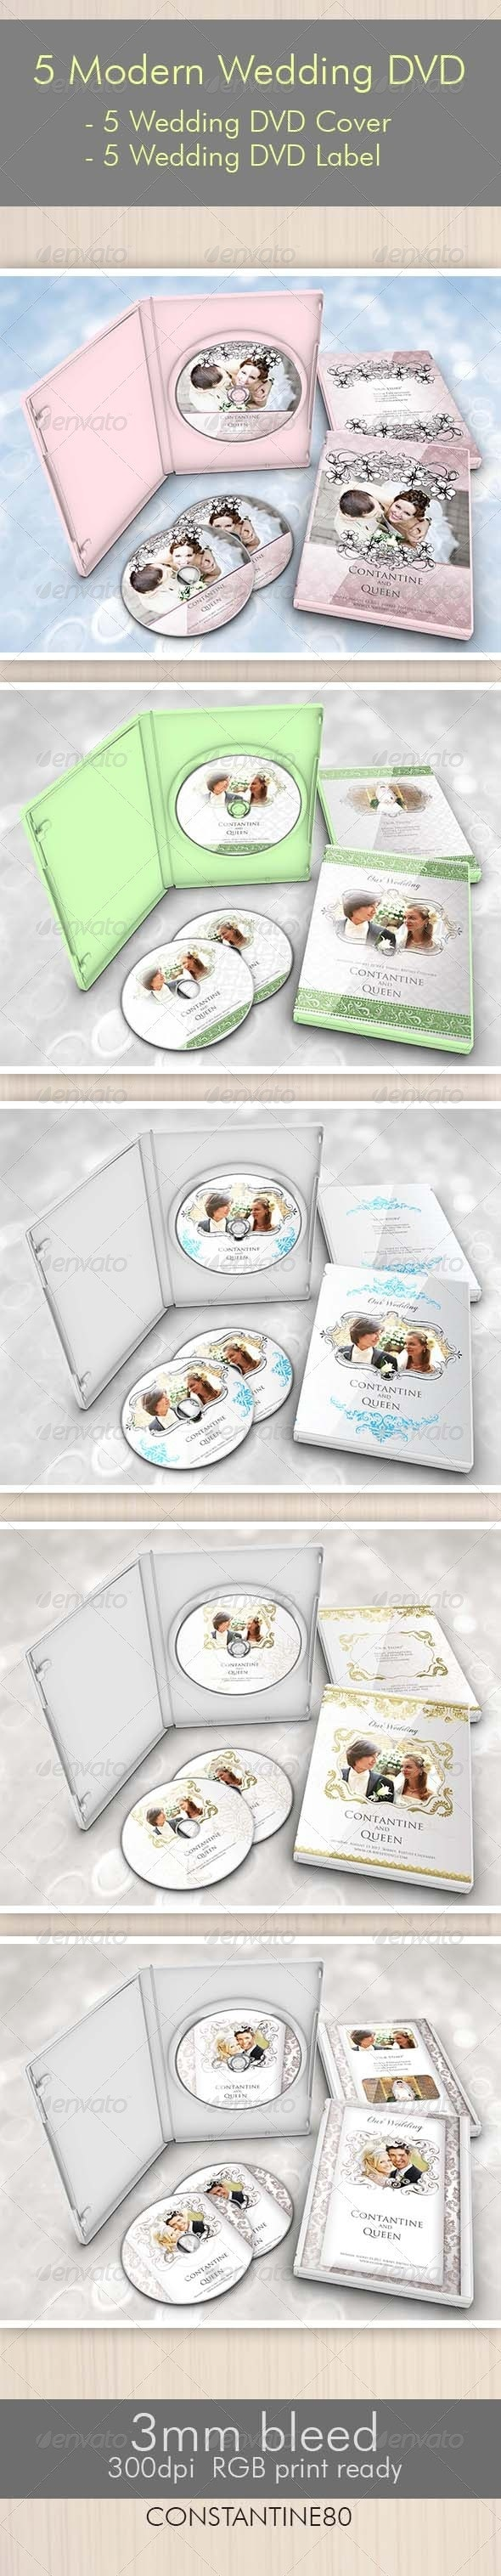 5 Items Modern Wedding DVD